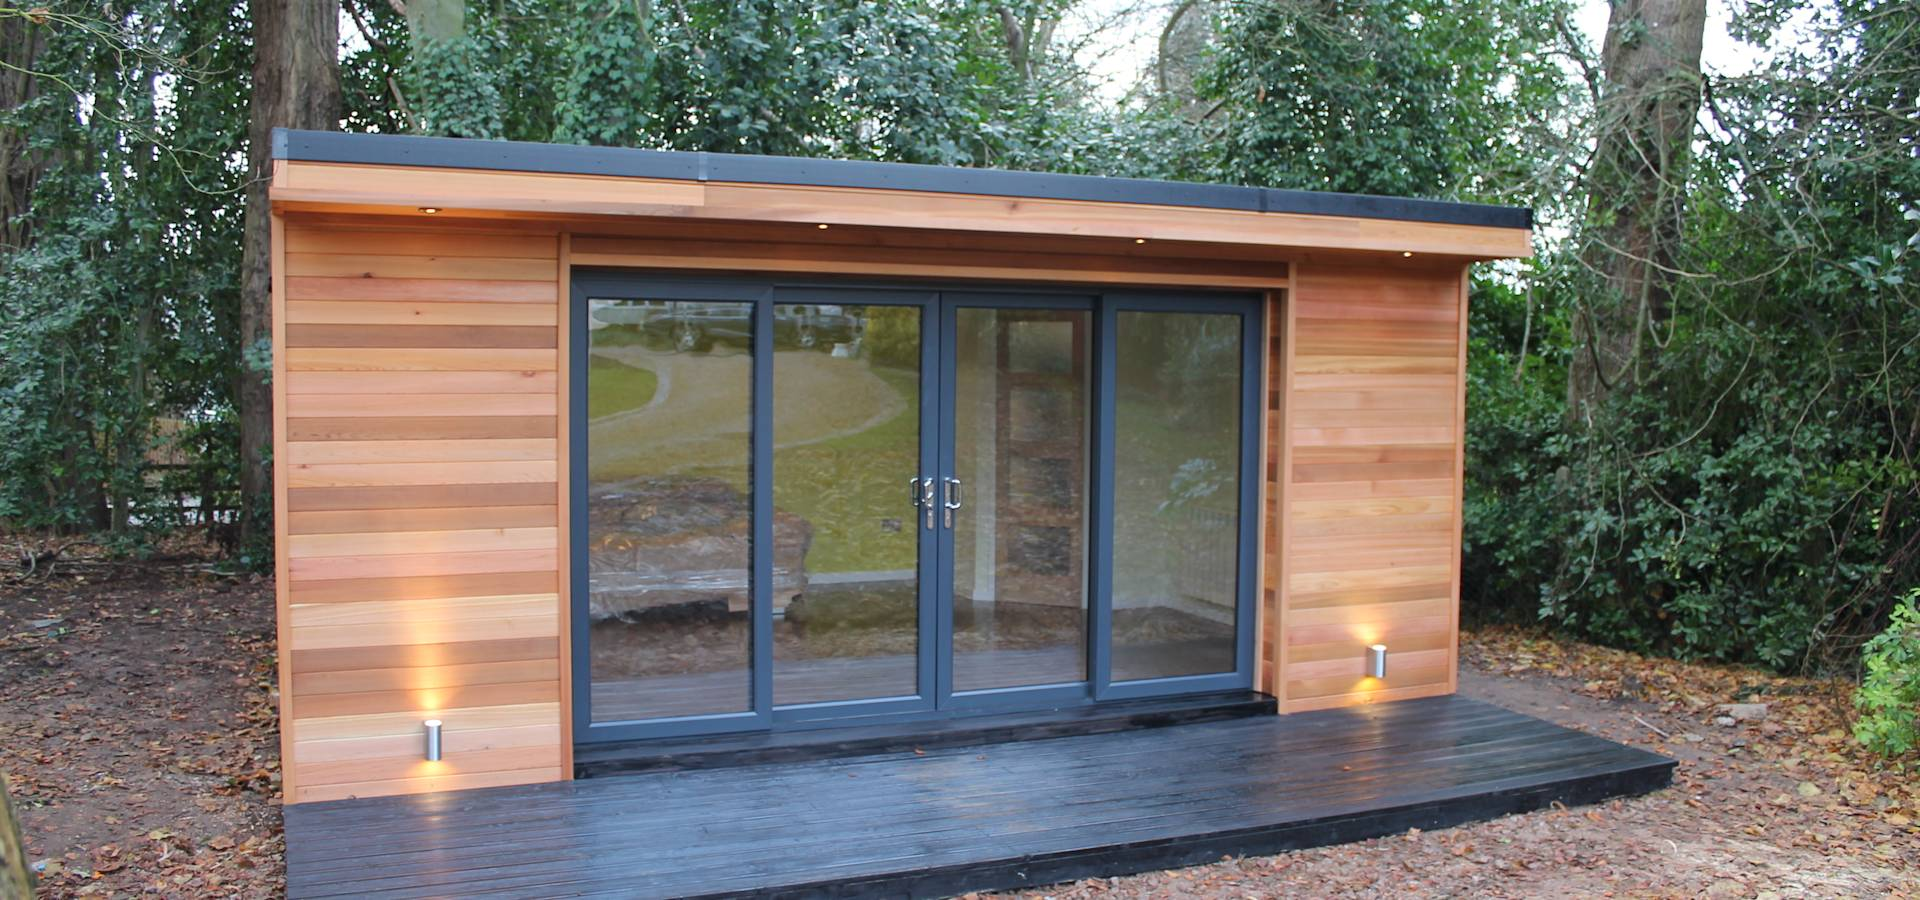 39 the crusoe classic 39 6m x 4m garden room home office for Cedar garden office